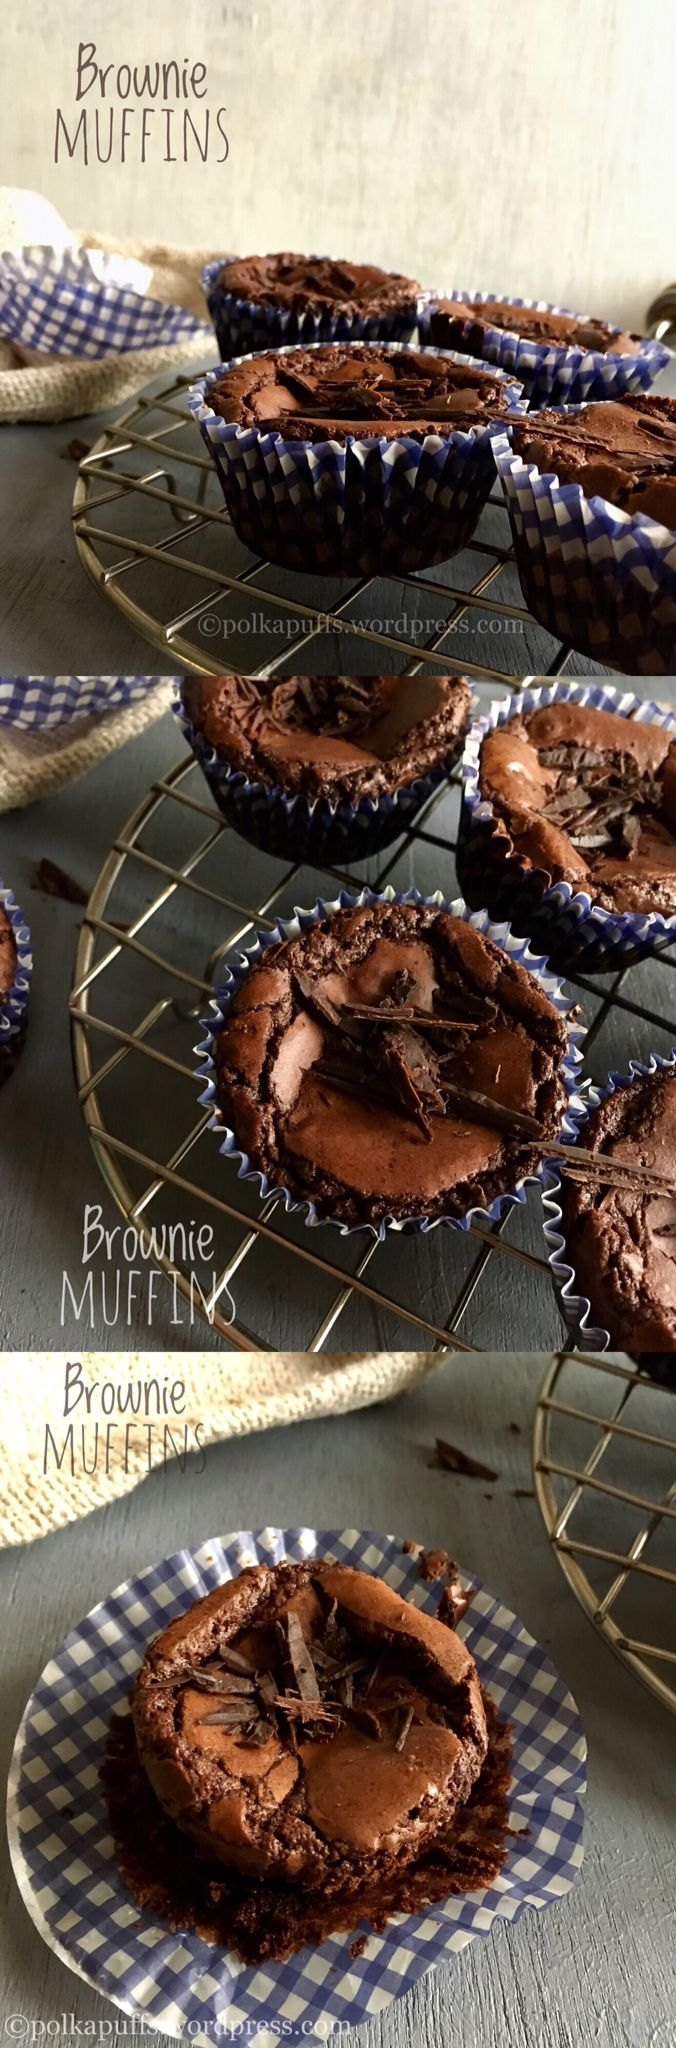 Brownie Muffins Gooey and so fudgy!